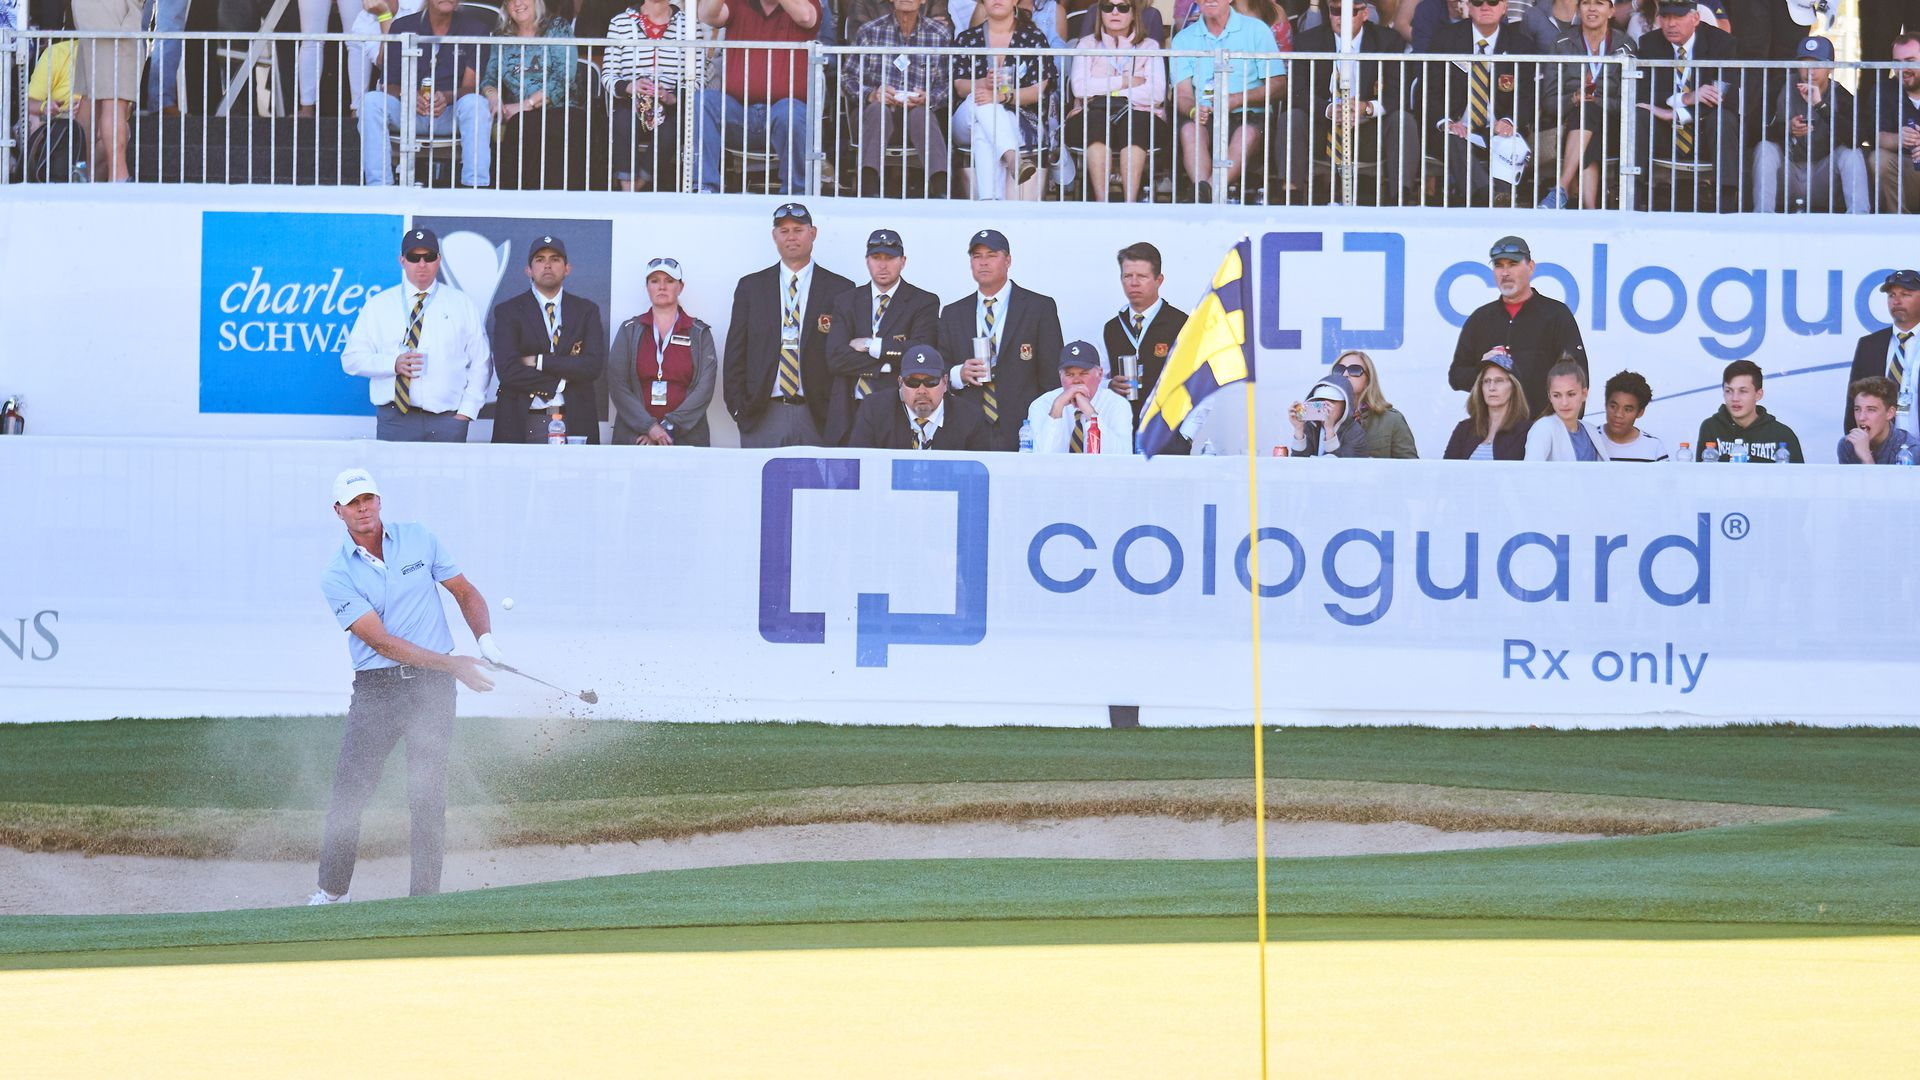 A golfer hits a shot at a 2018 tournament sponsored by Cologuard.